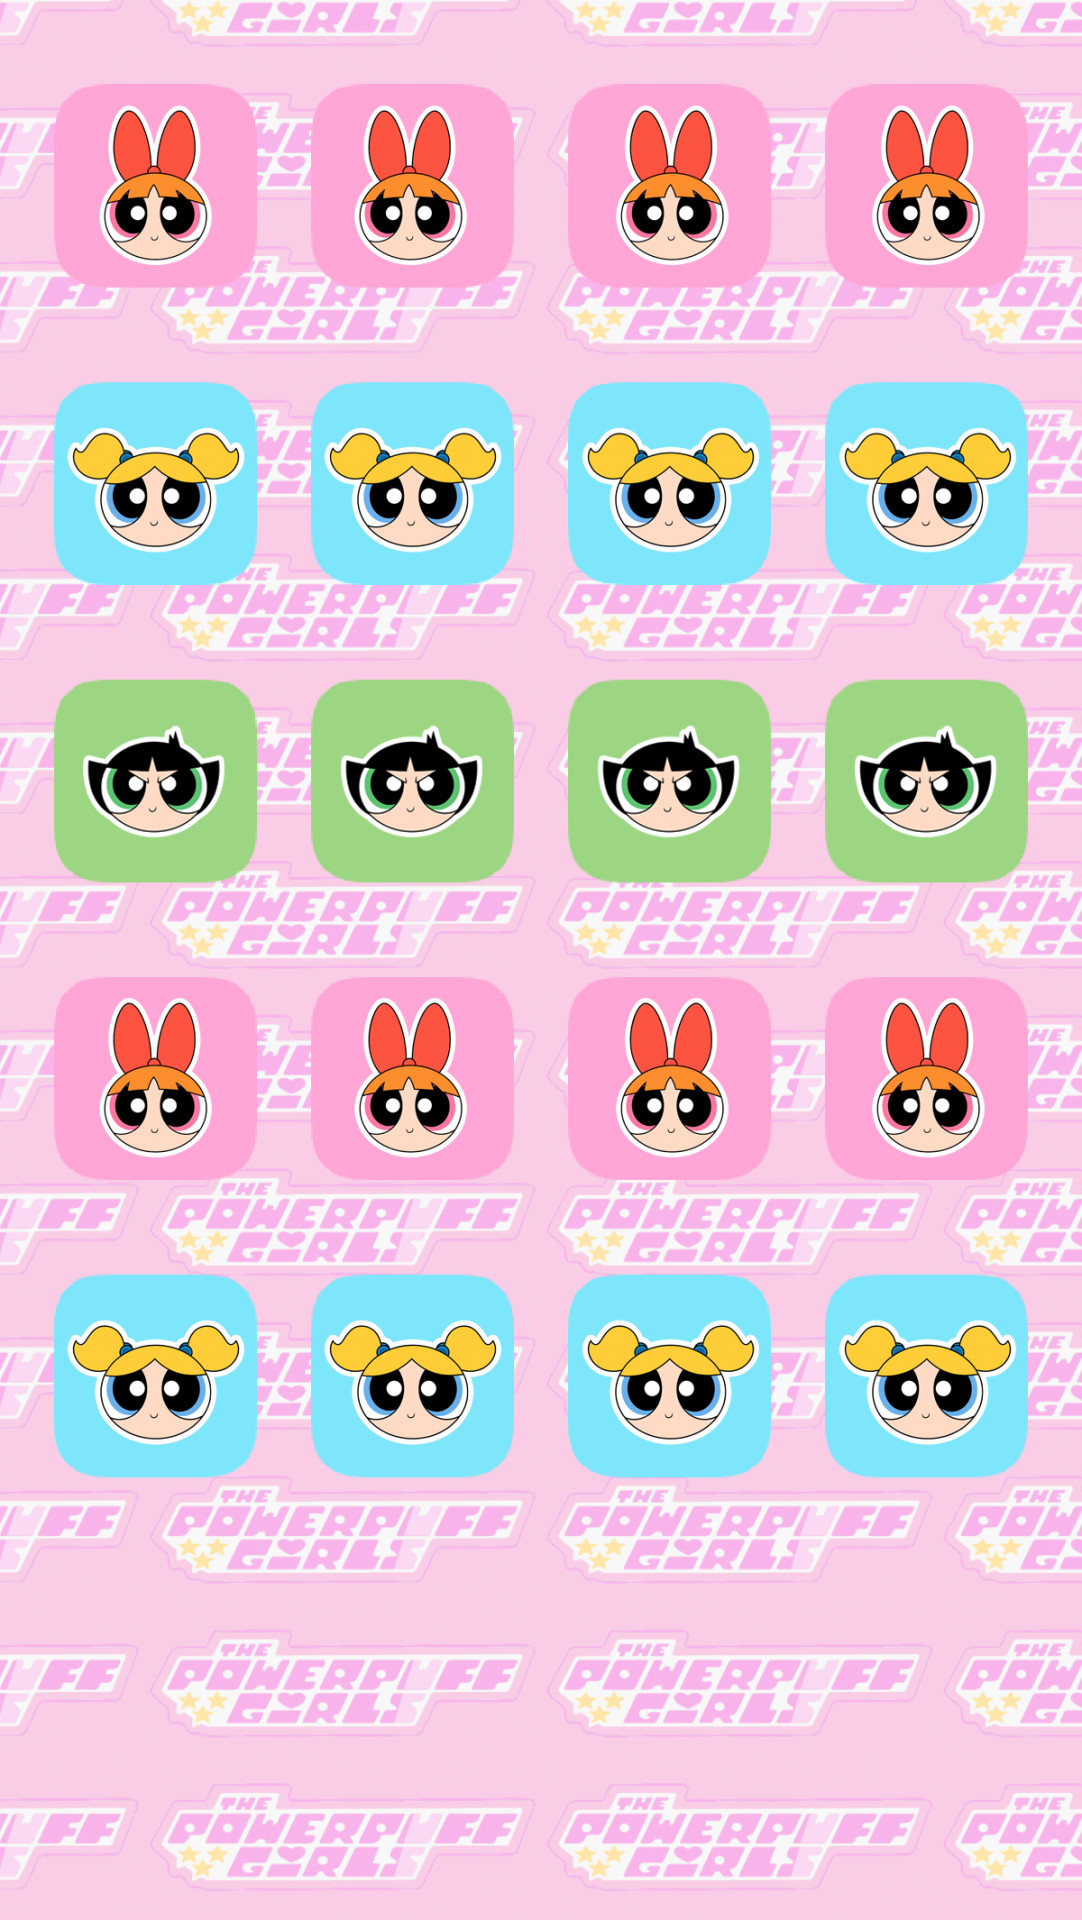 1082x1920 ppg powerpuff girls reboot 2016 lockscreens lockscreen aesthetic background  backgrounds iphone wallpaper iphone wallpapers cool hot